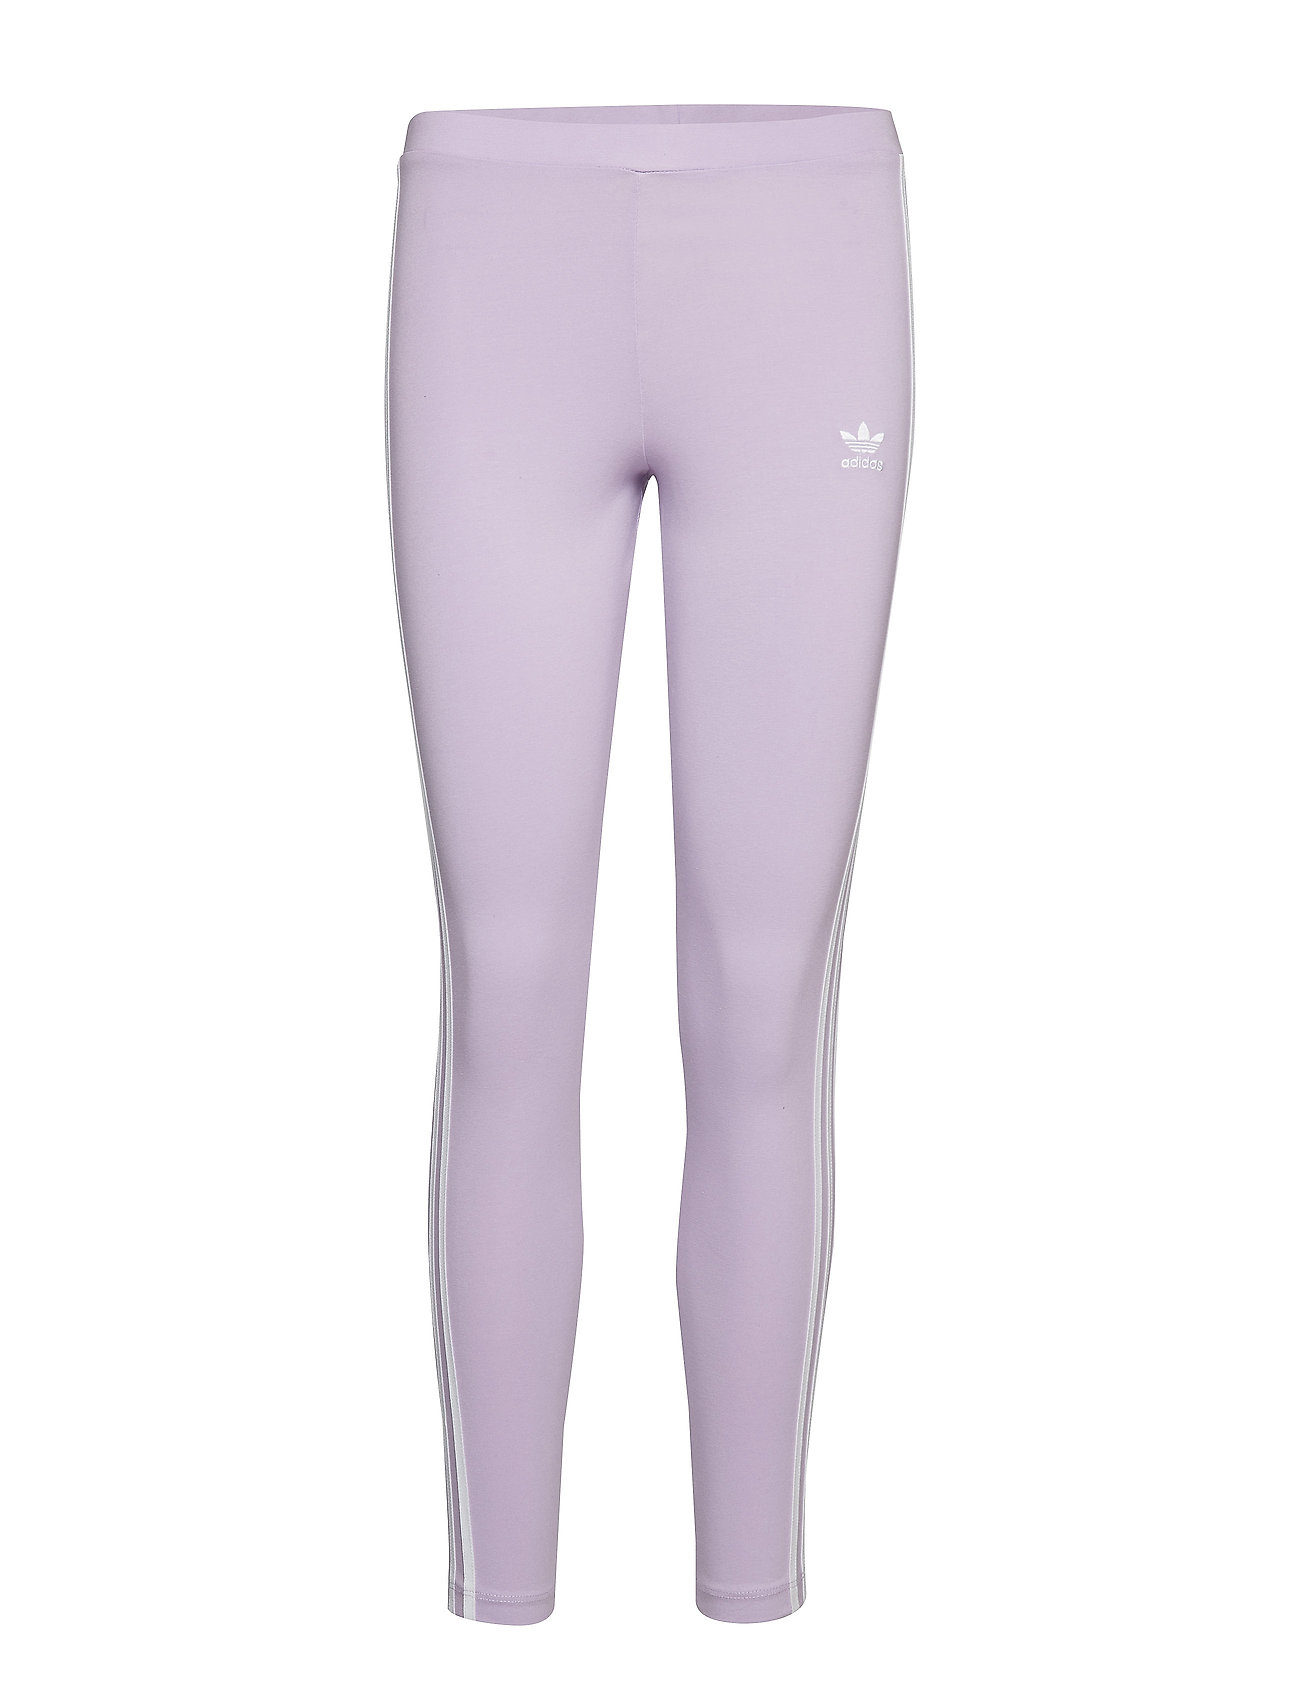 adidas Originals 3 STR TIGHT - PURGLO